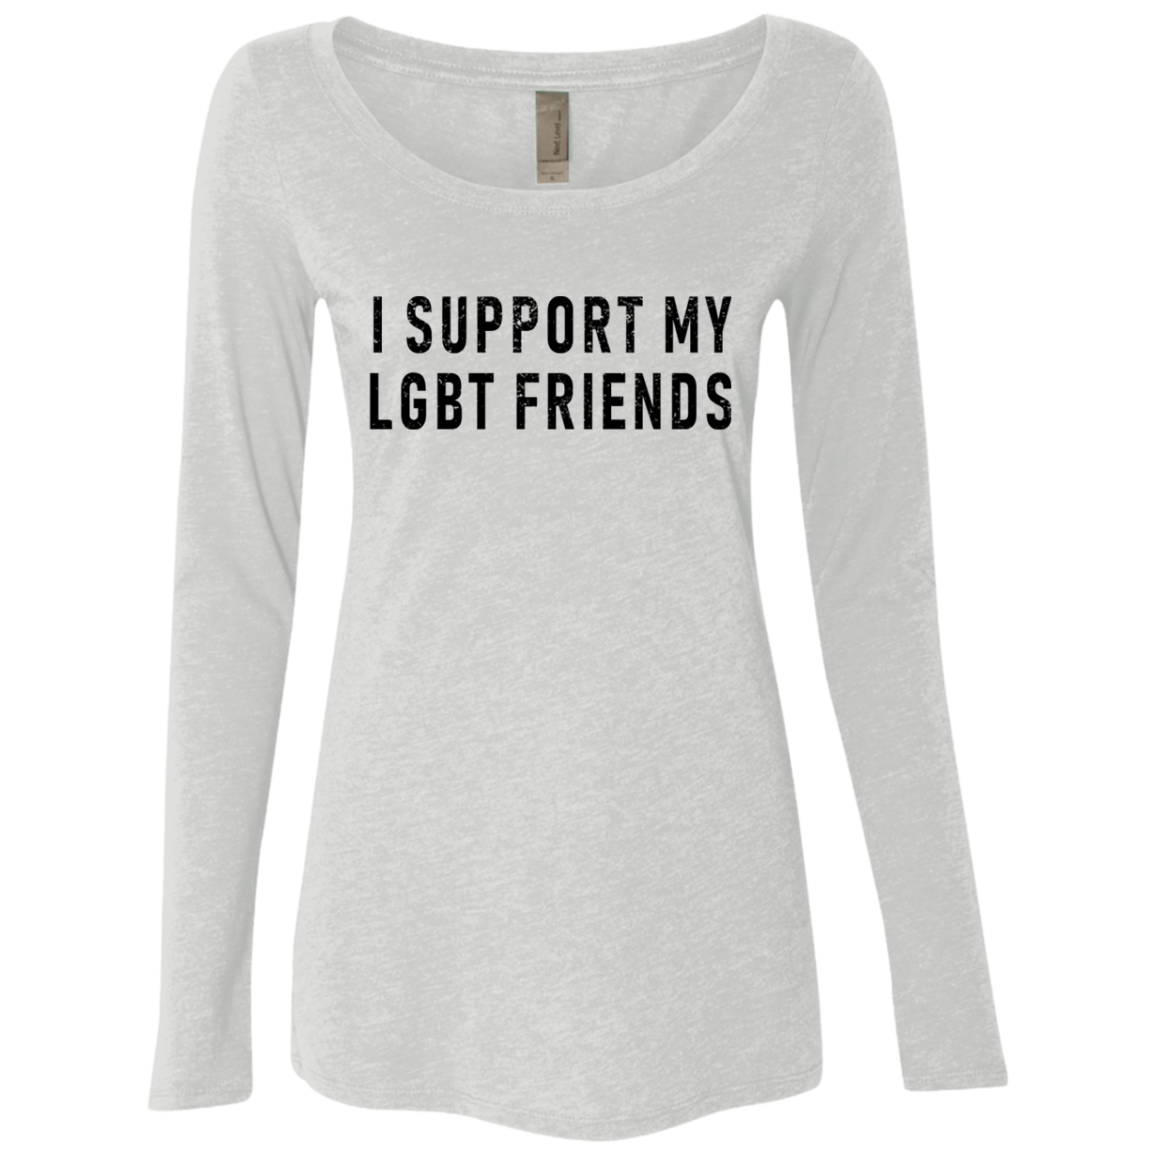 I Support My LGBT Friends Women's Long Sleeve Tee